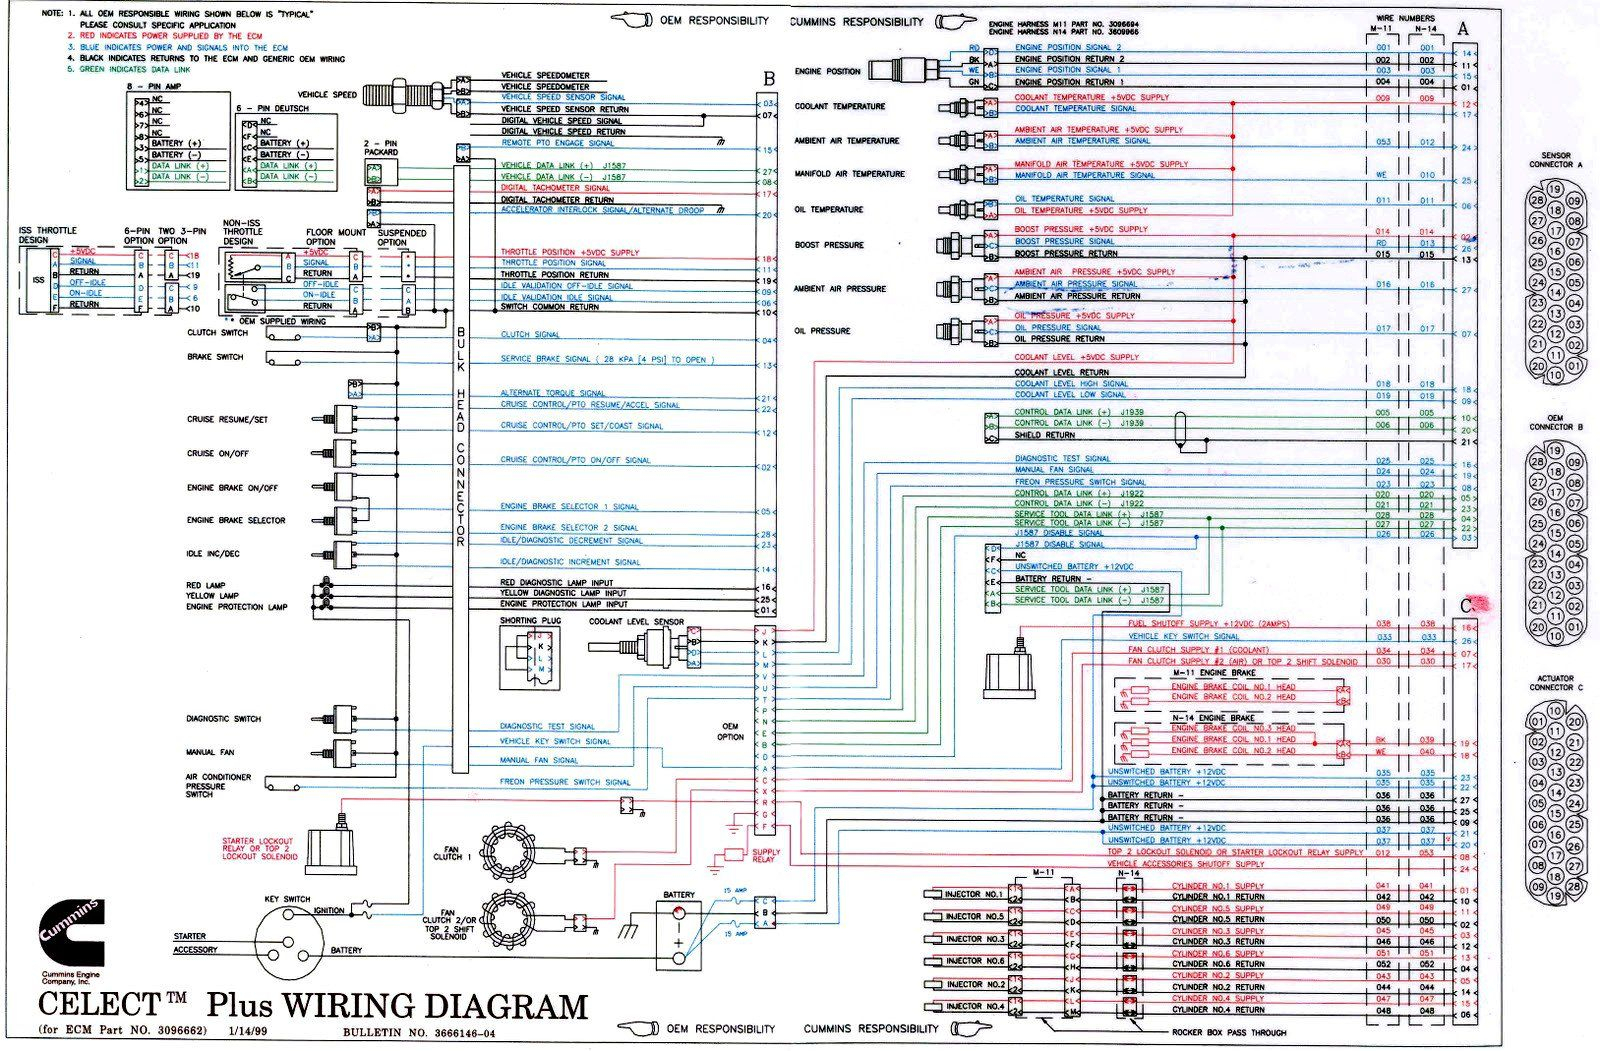 Wiring Diagram 3126 Cat Engine Wiring Diagram On Cat 3126 Ecm